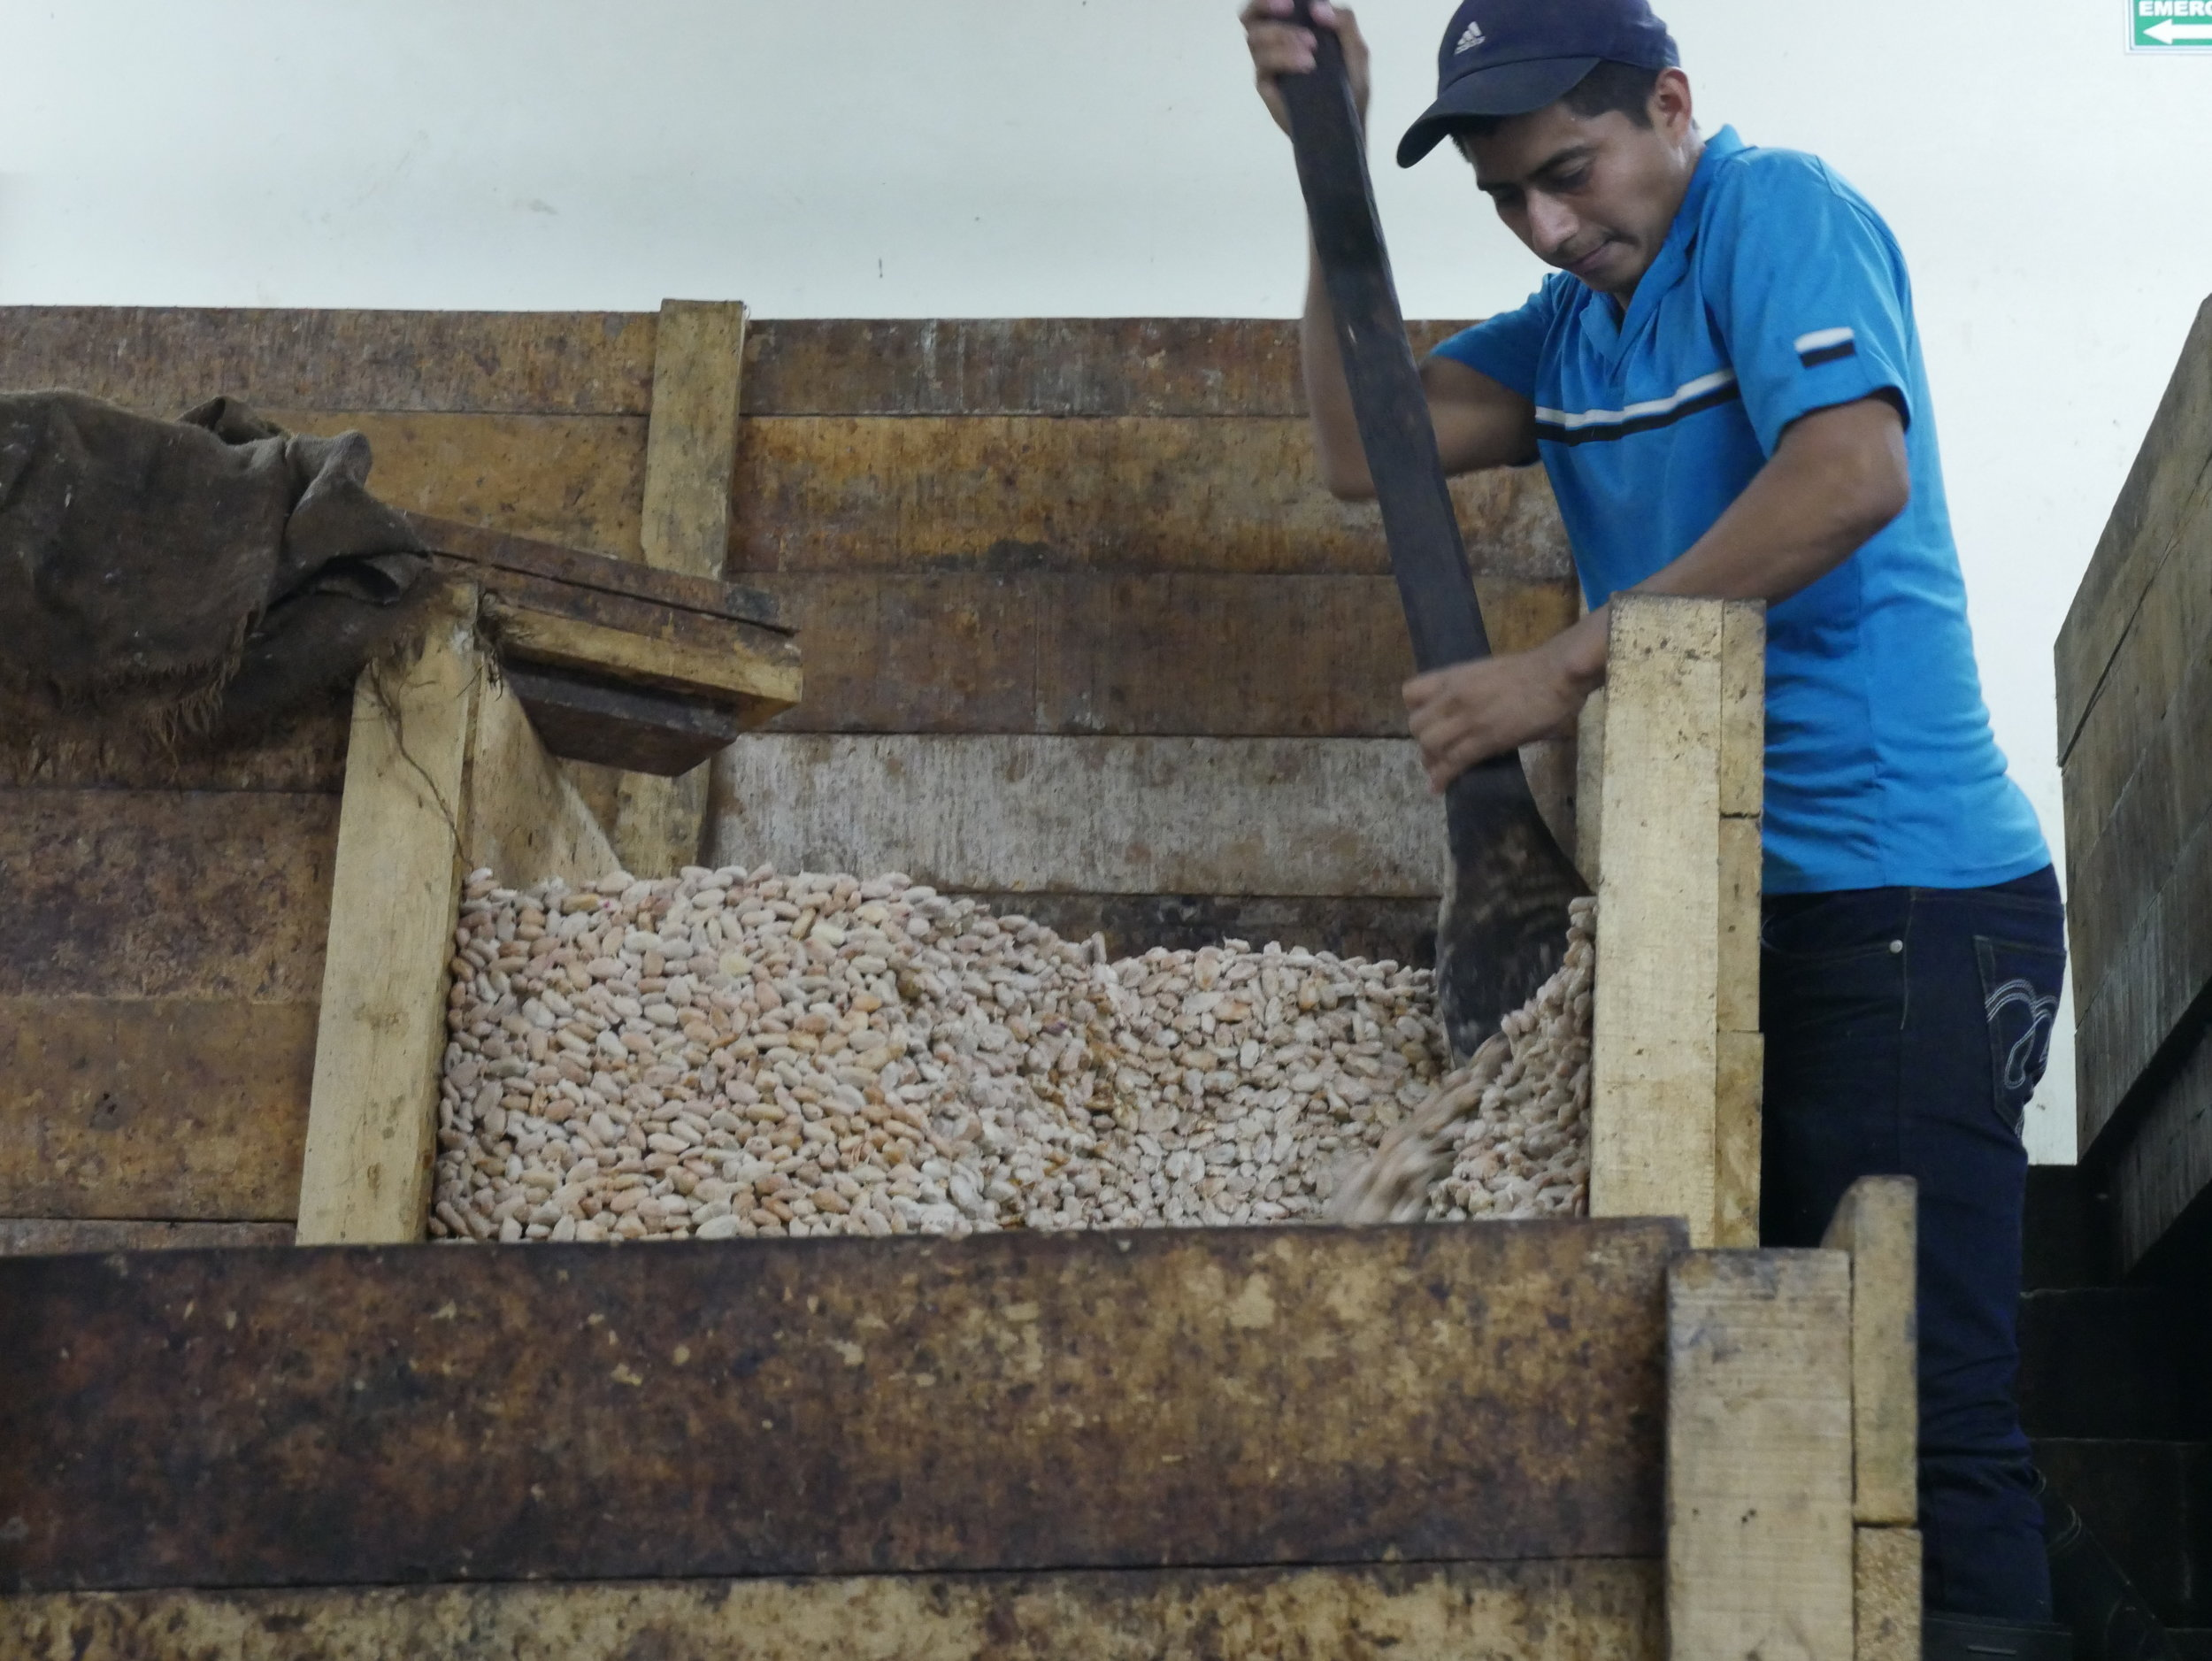 farmer empowerment - We partner with a cacao farmer co-op in Honduras and five domestic farm families.